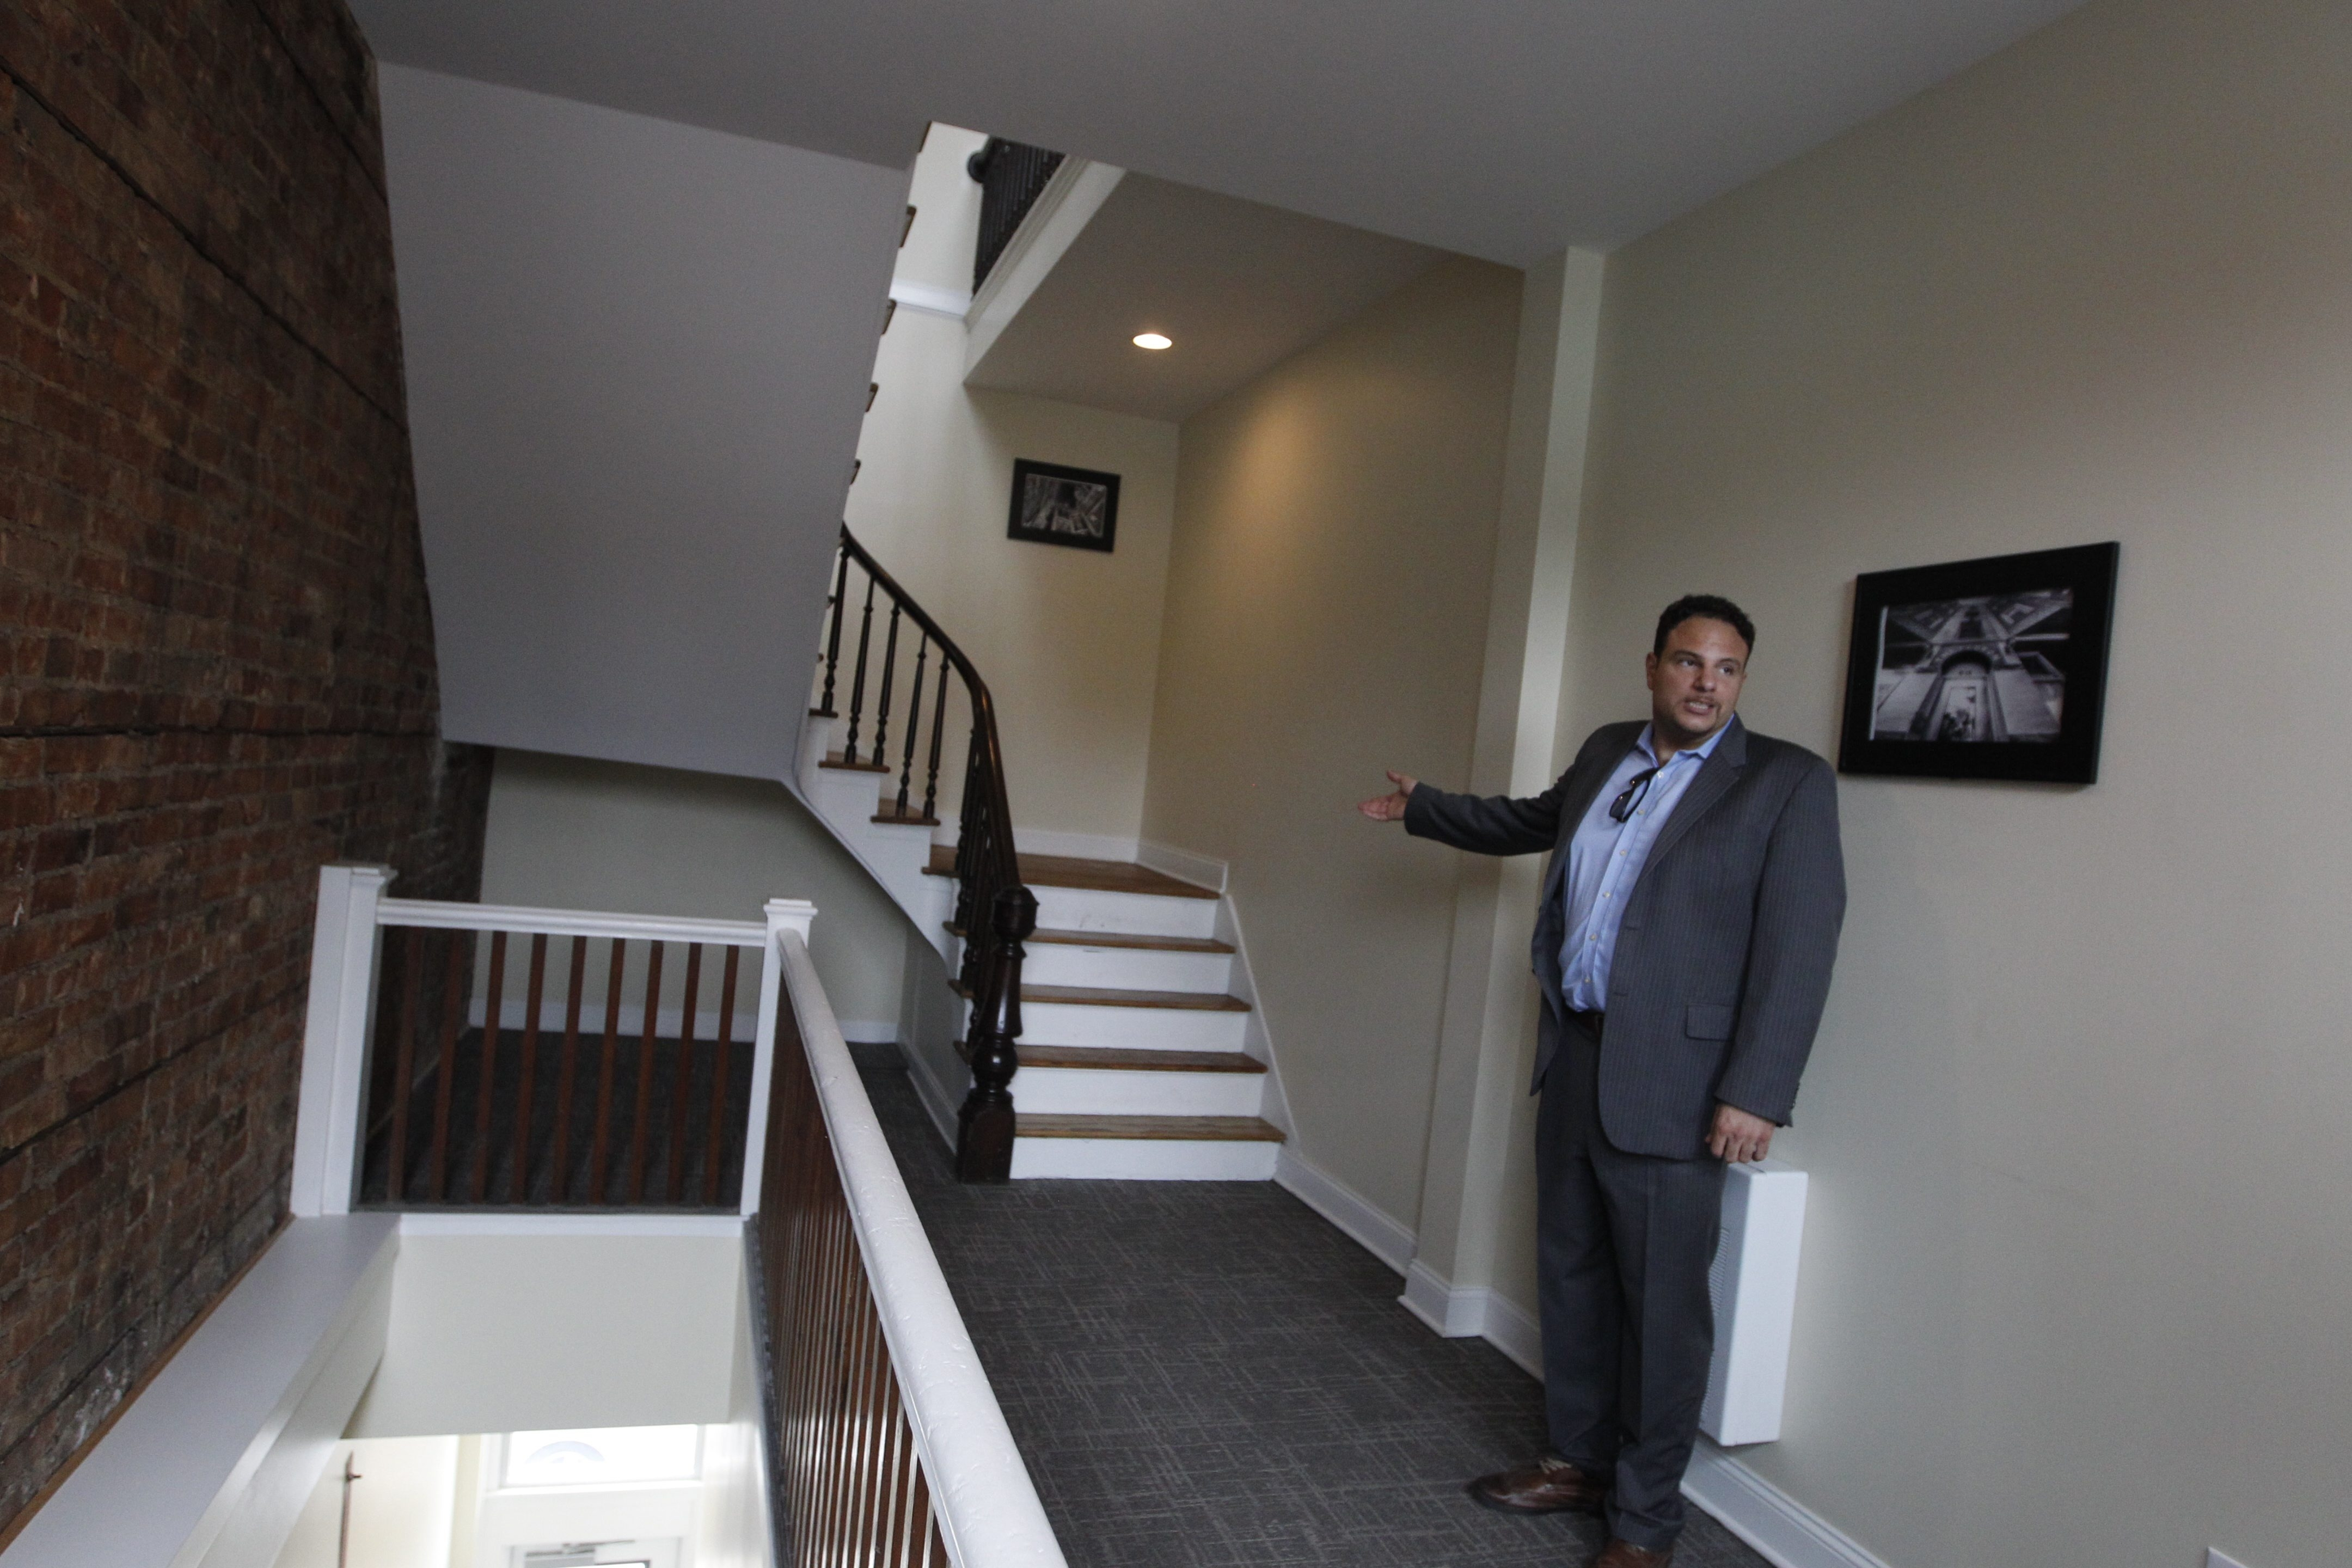 Developer Nick Sinatra gives a showing off a staircase on a tour of Fenton Village, the apartments at the corner of Main and Ferry in Buffalo, N.Y., on Tuesday, June 23, 2015. (John Hickey/Buffalo News)